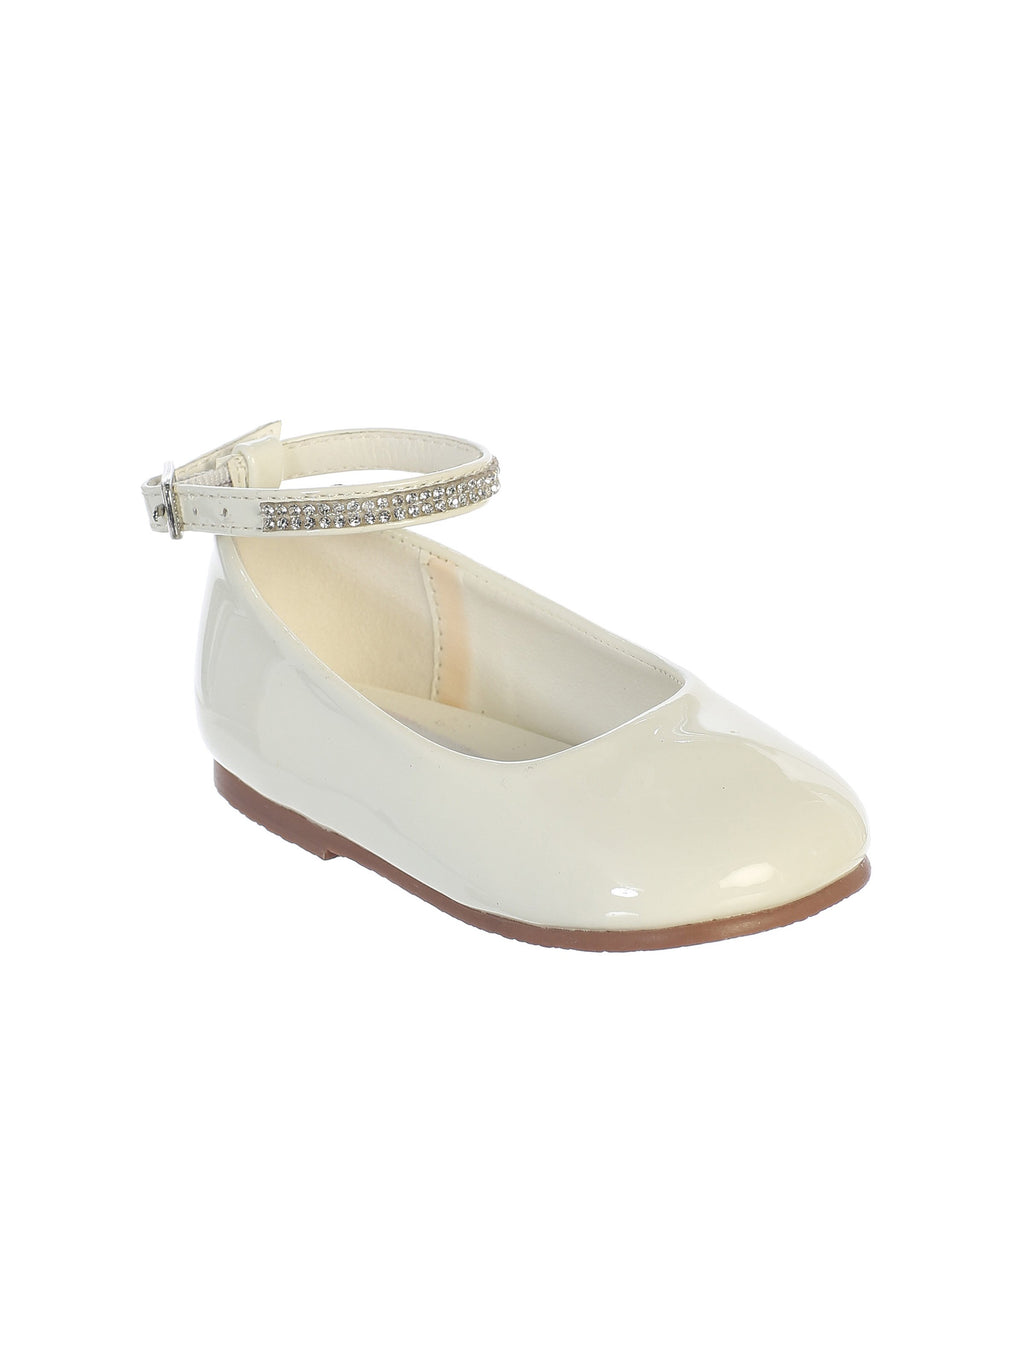 Ivory Flats with Rhinestone Strap